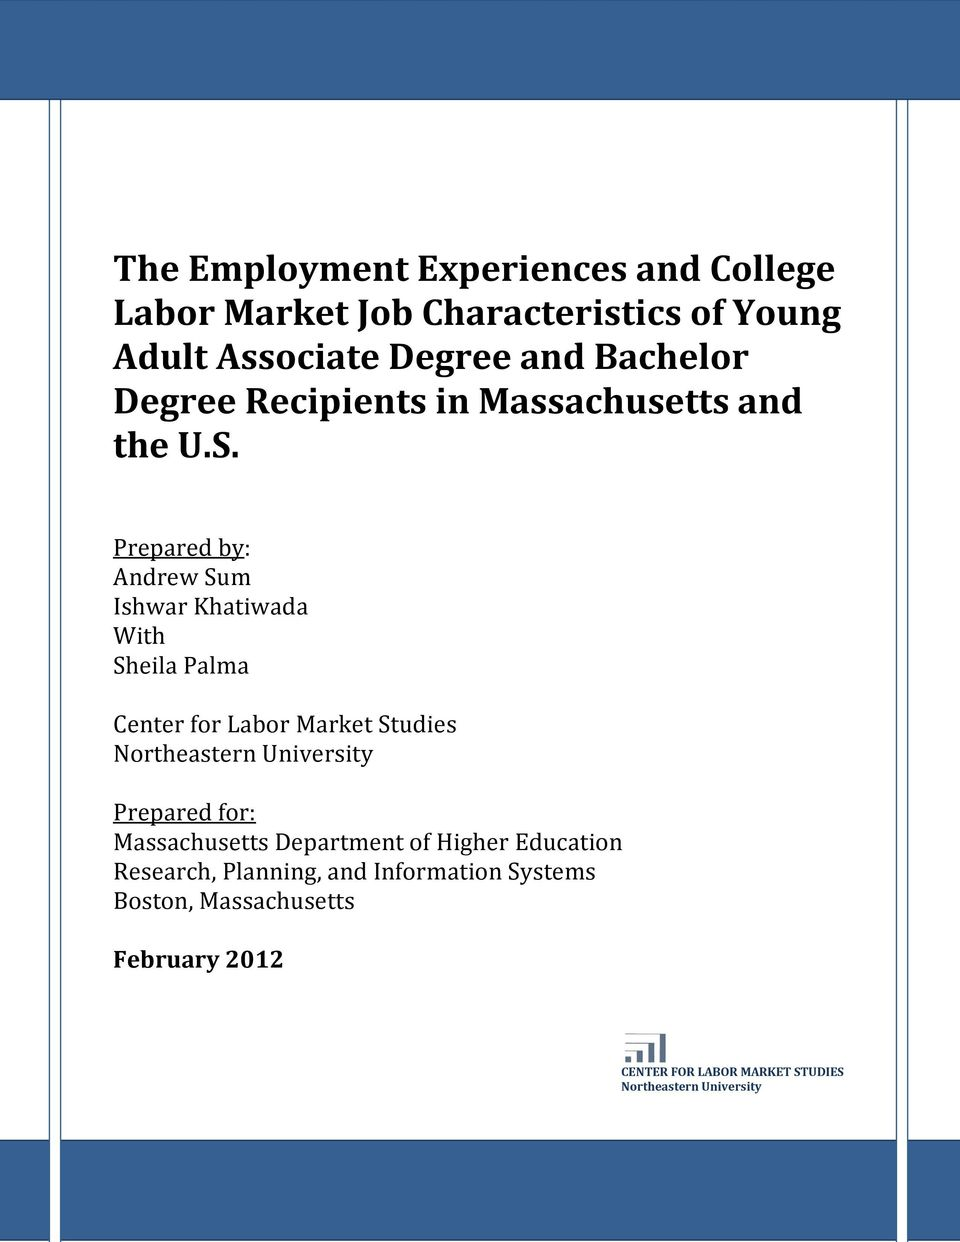 Prepared by: Andrew Sum Ishwar Khatiwada With Sheila Palma Center for Labor Market Studies Northeastern University